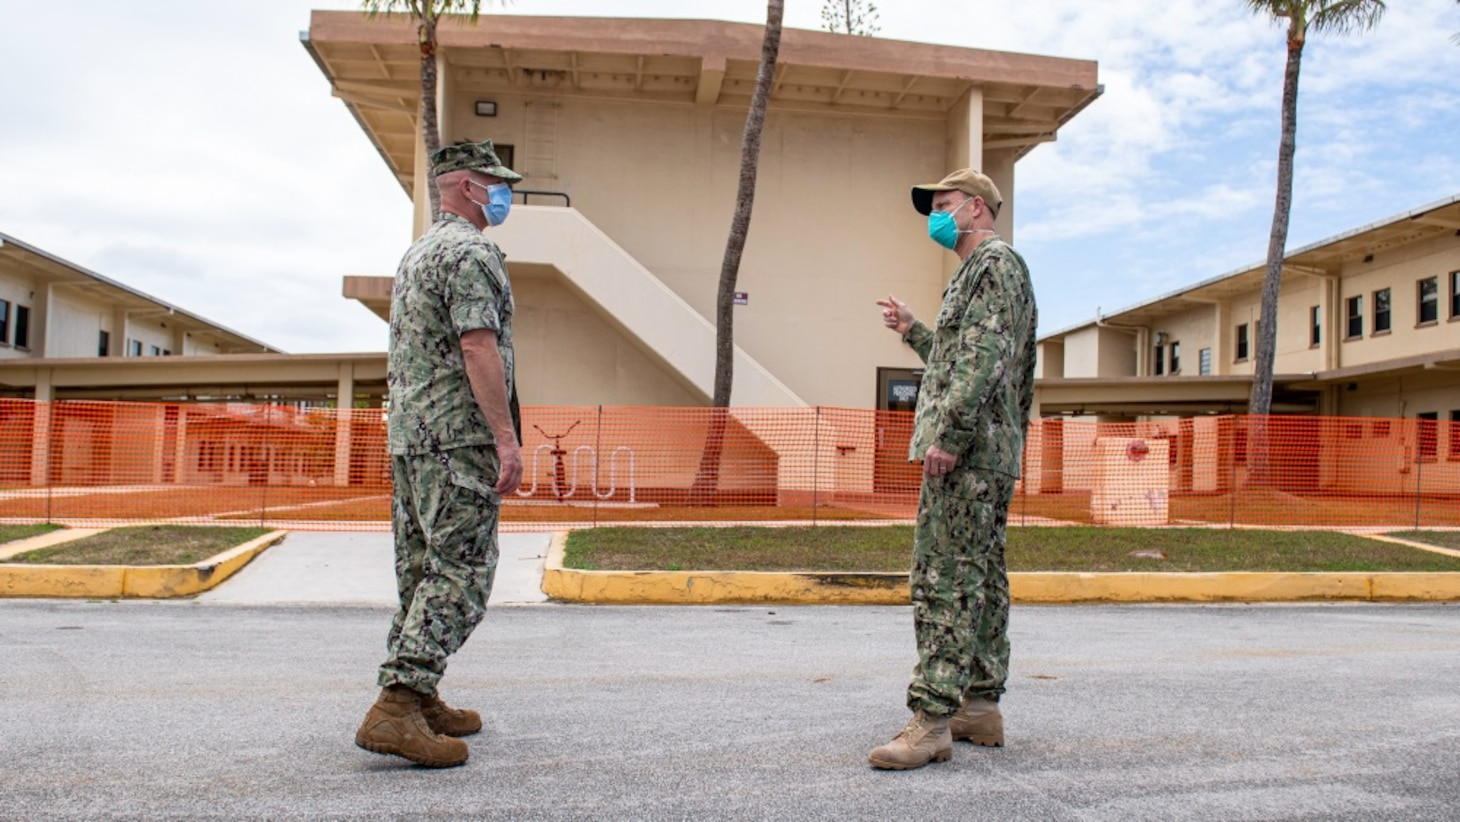 Vice Admiral Bill Merz, commander, U.S. 7th Fleet, meets with the Naval Base Guam Commanding Officer Capt. Jeffrey Grimes and Rear Adm. John Menoni, commander, Joint Region Marianas, outside of a military barracks housing Sailors from USS Theodore Roosevelt (CVN 71), April 5. Merz arrived in Guam to assess and support the ongoing COVID-19 recovery efforts for the crew of Theodore Roosevelt.